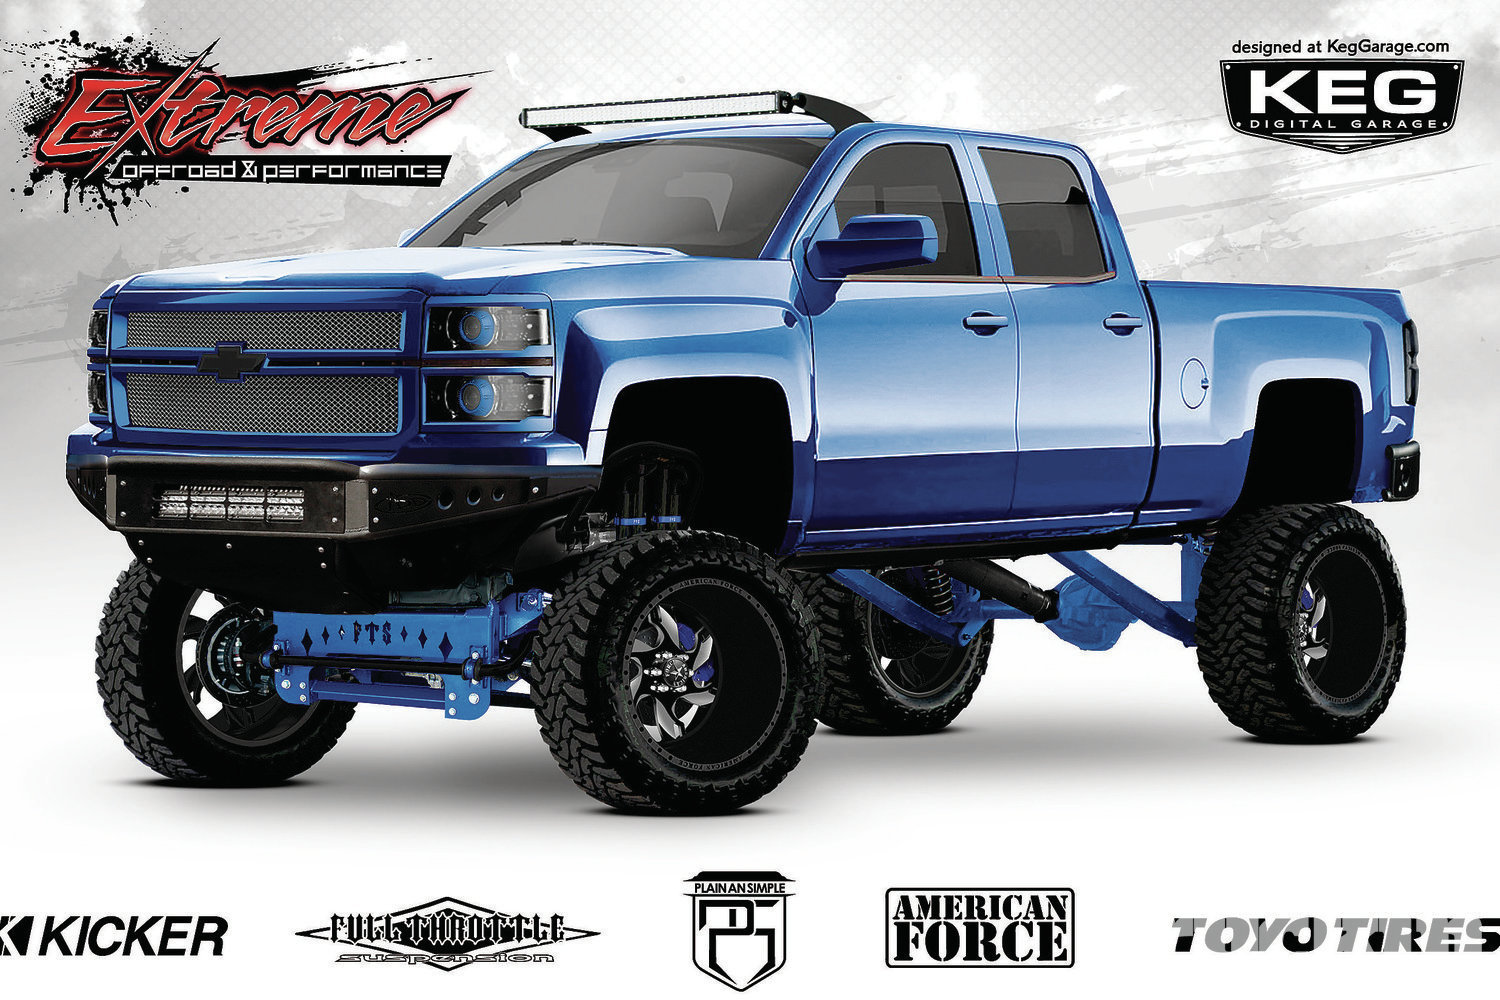 Chevrolet Silverado Lifted Wallpaper Chevy Silverado Photo Cool Images 1500x1000